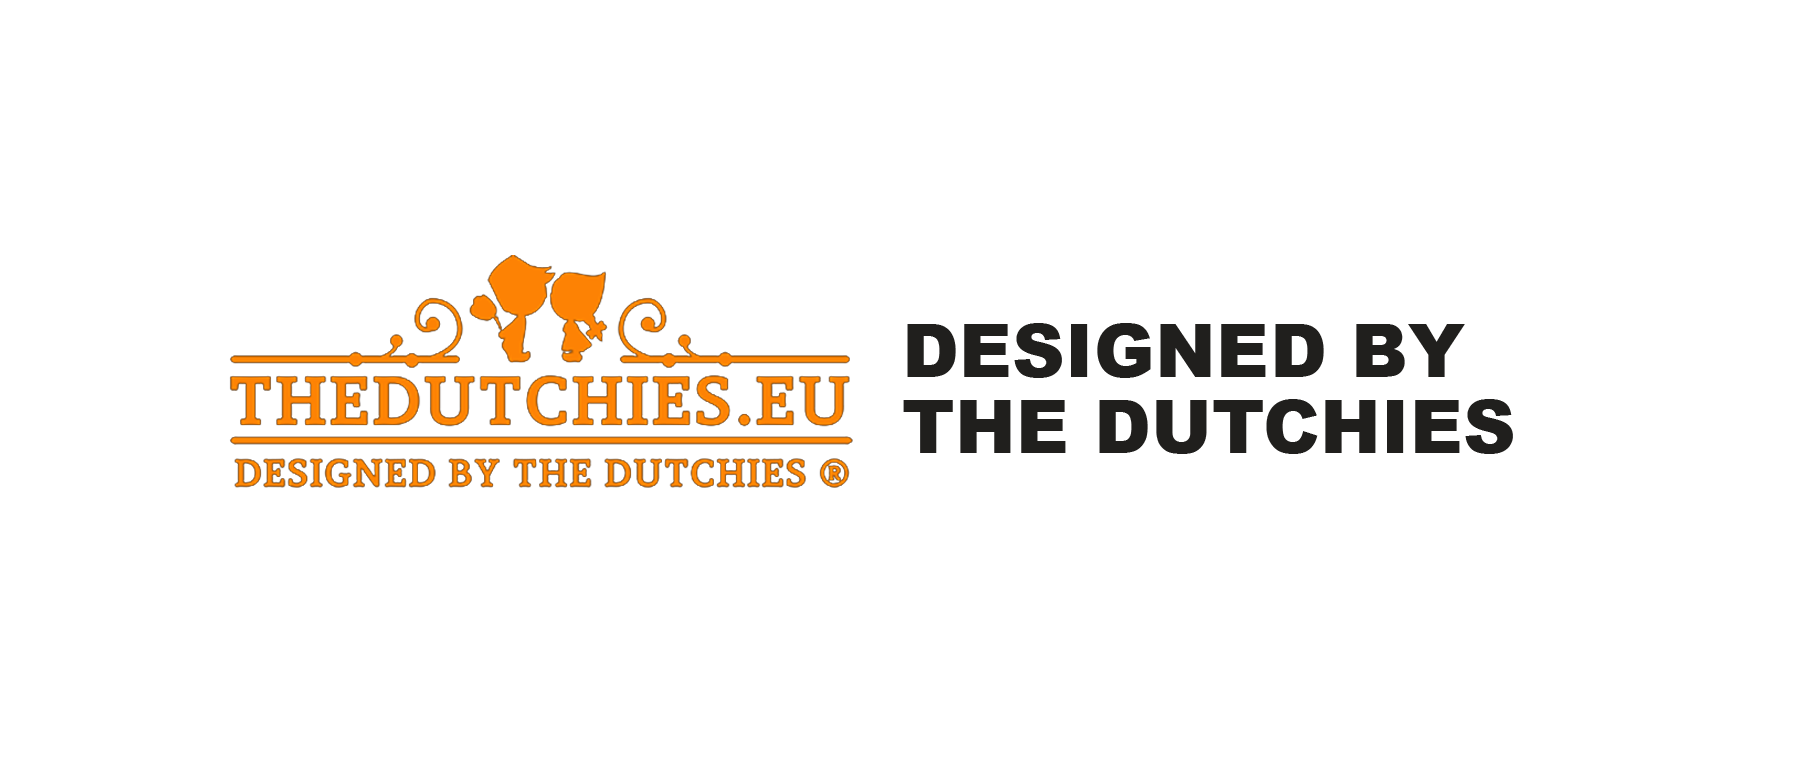 DESIGNED BY THE DUTCHIES